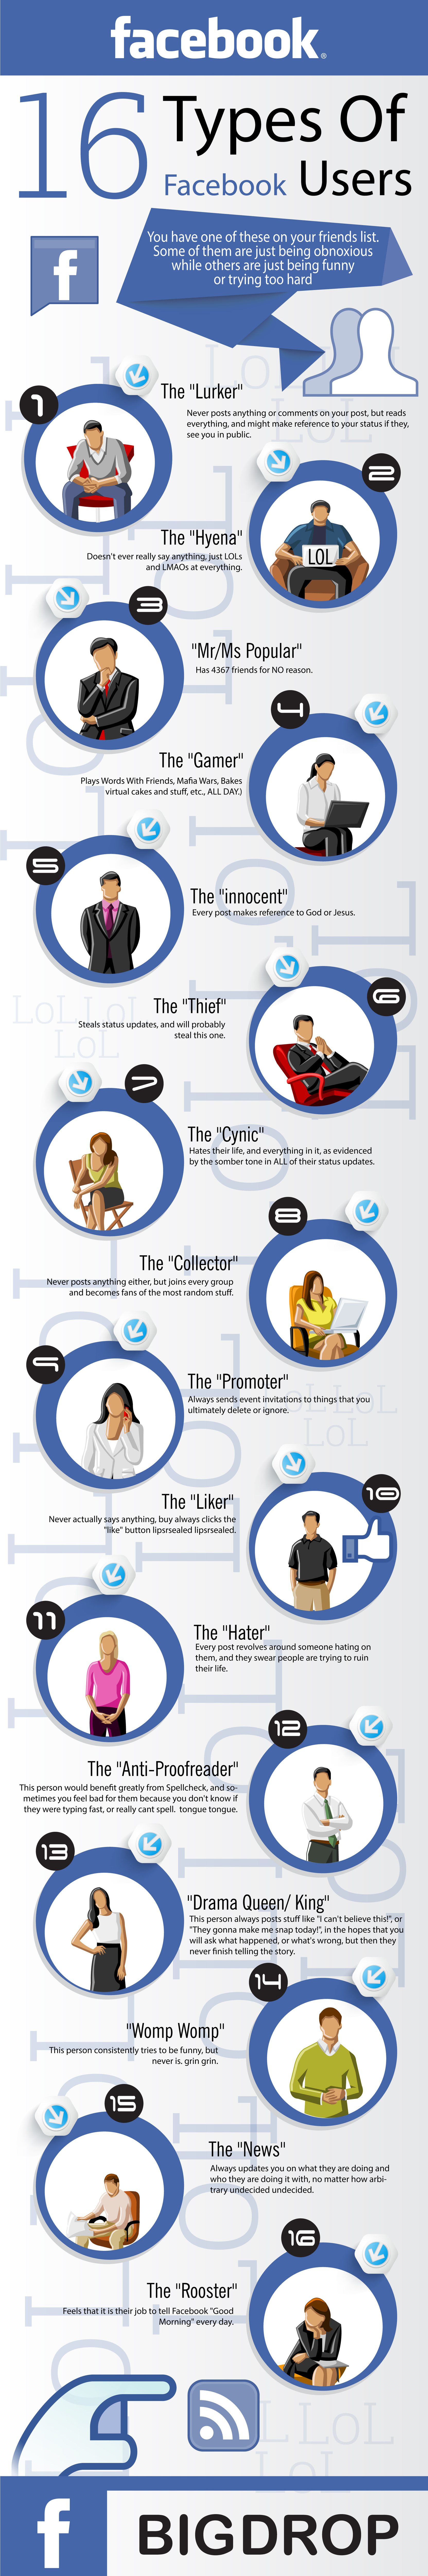 Infographic: 16 Types Of Facebook Users